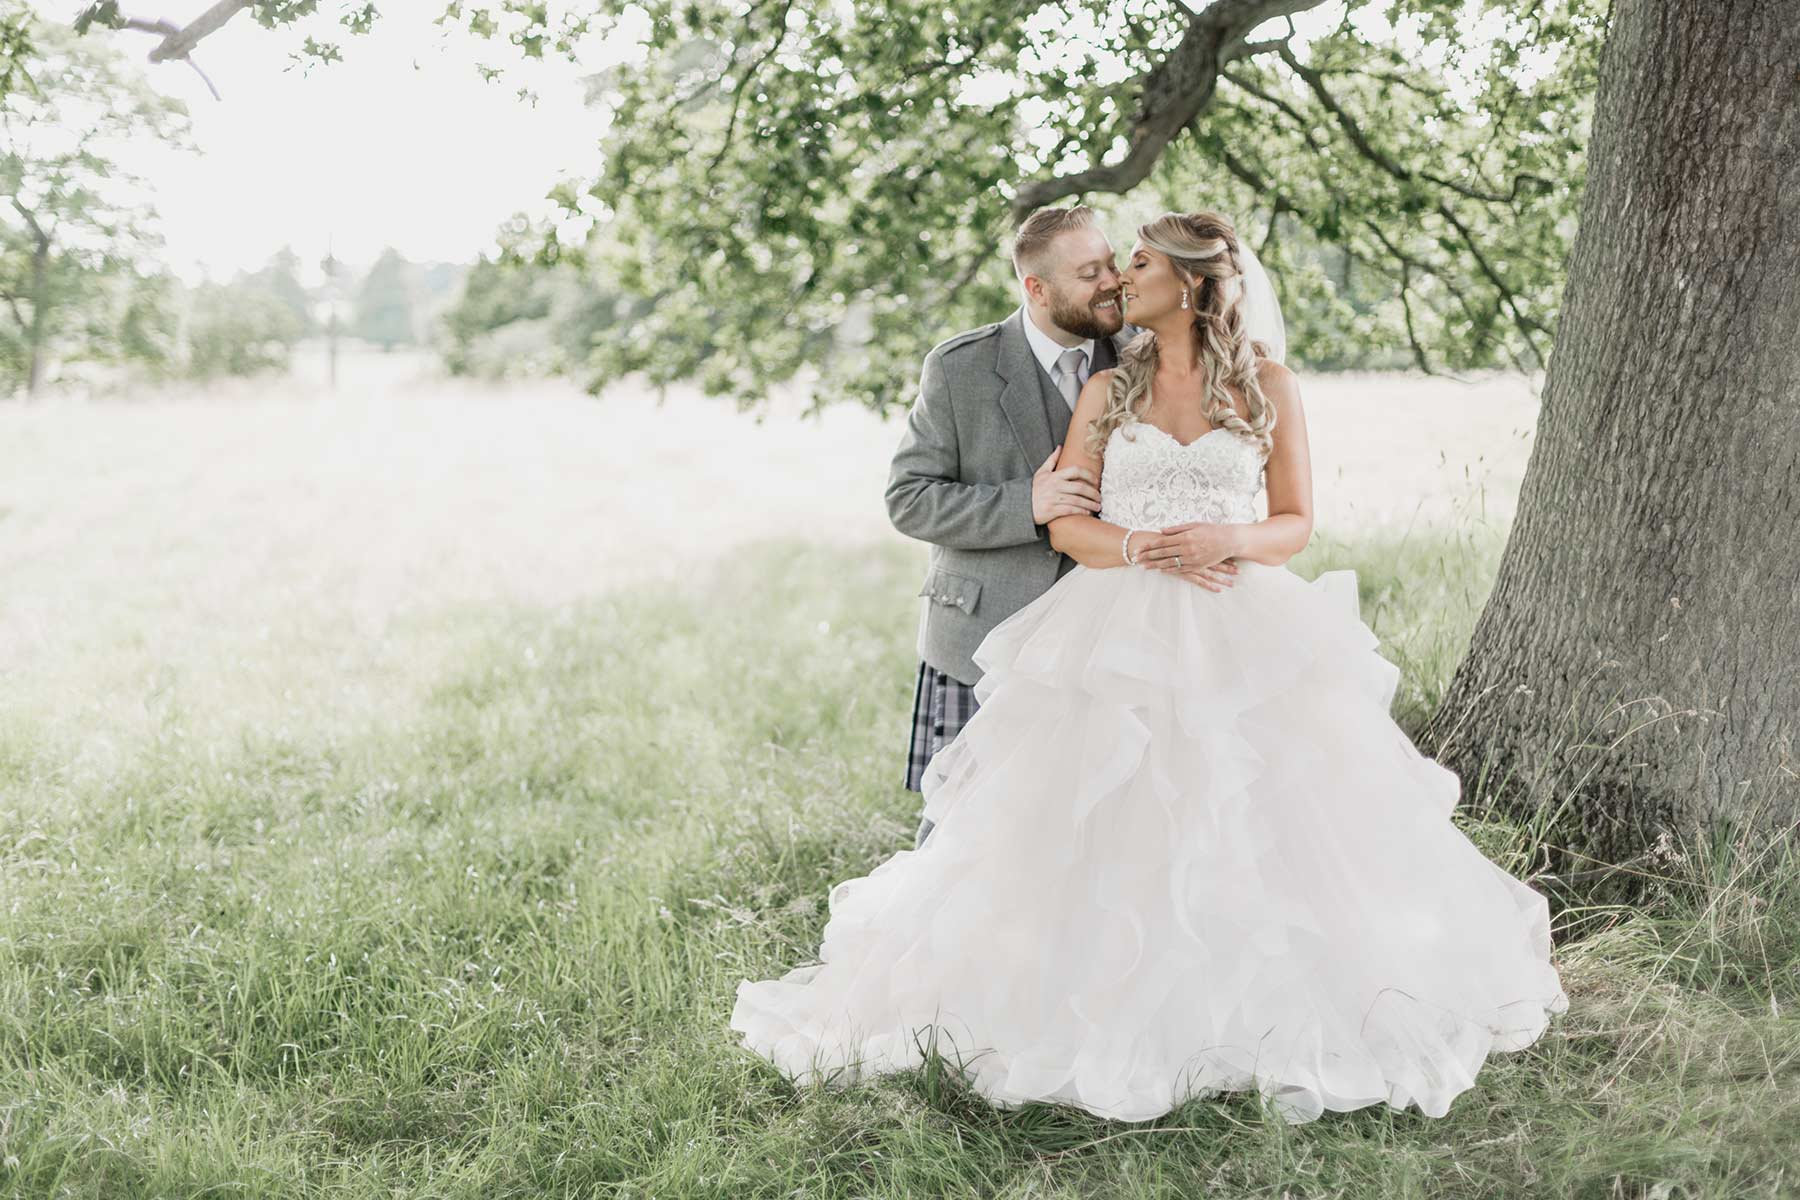 Romantic Wedding couple stealing a kiss under a tree